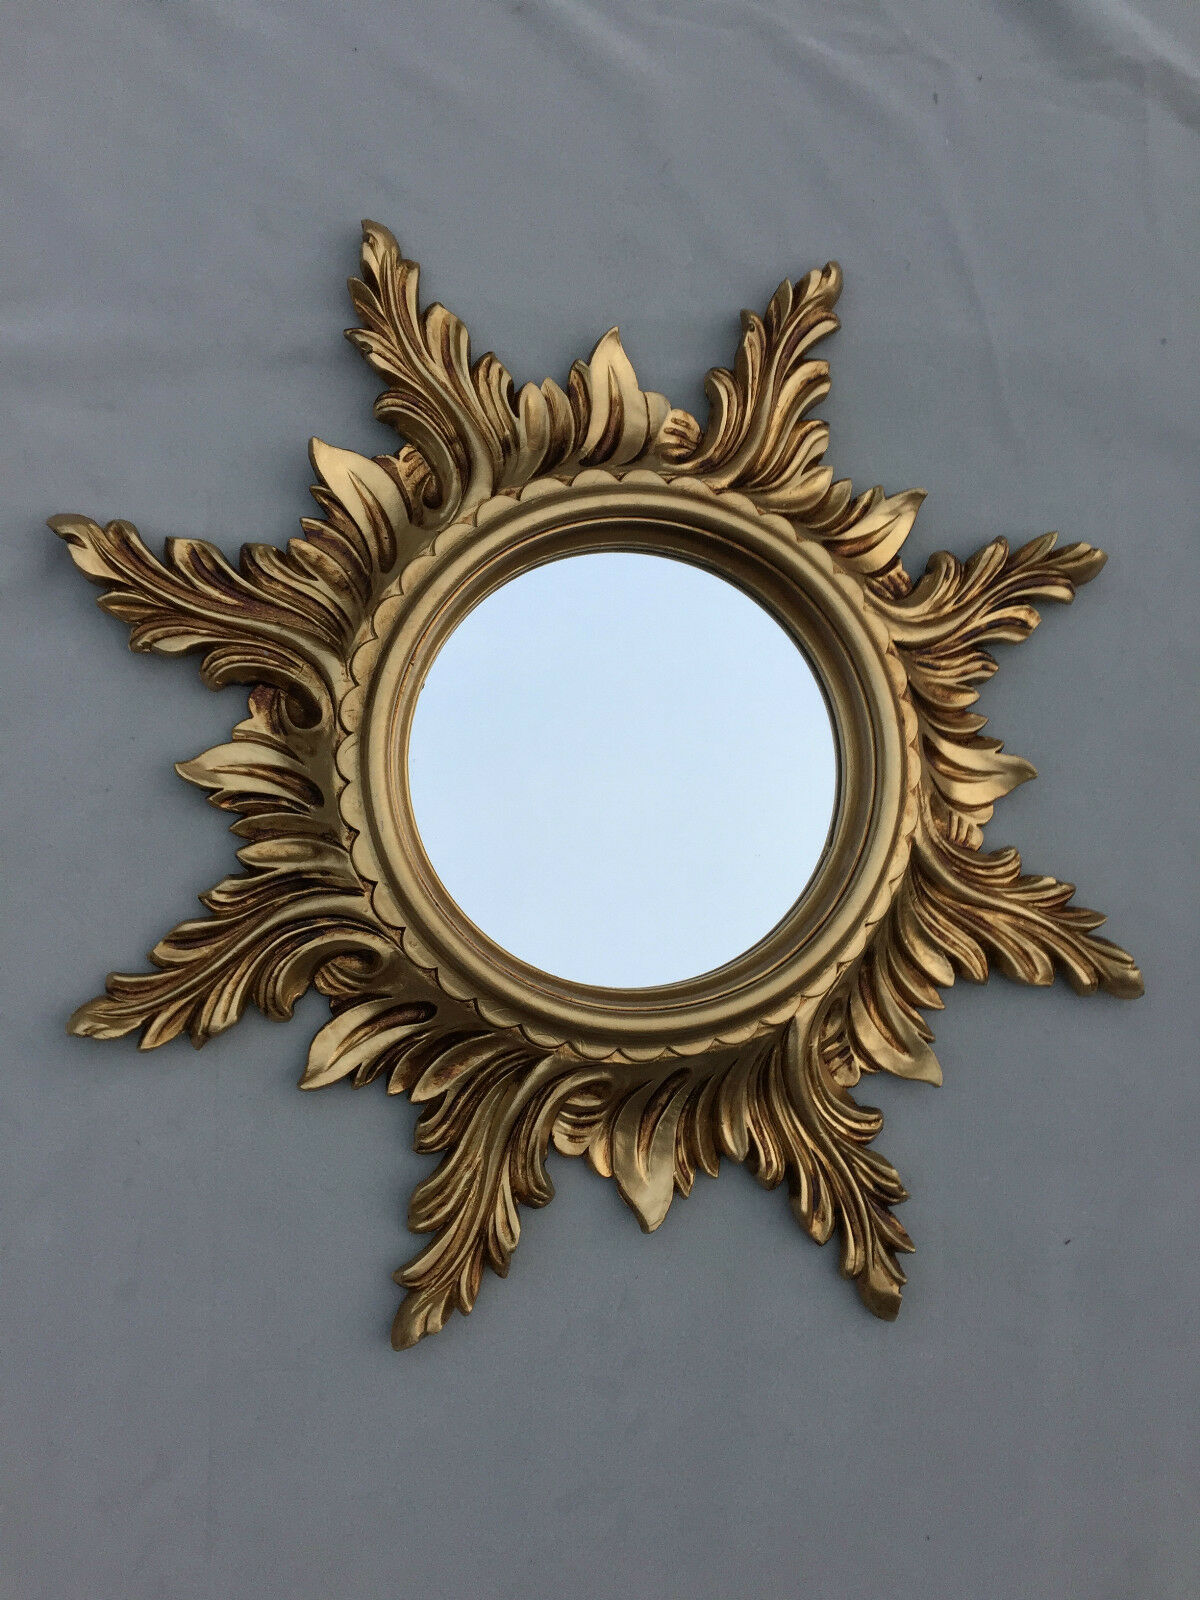 wandspiegel barock gold spiegel sonne 50cm massiv badspiegel sun mirror c495 ebay. Black Bedroom Furniture Sets. Home Design Ideas